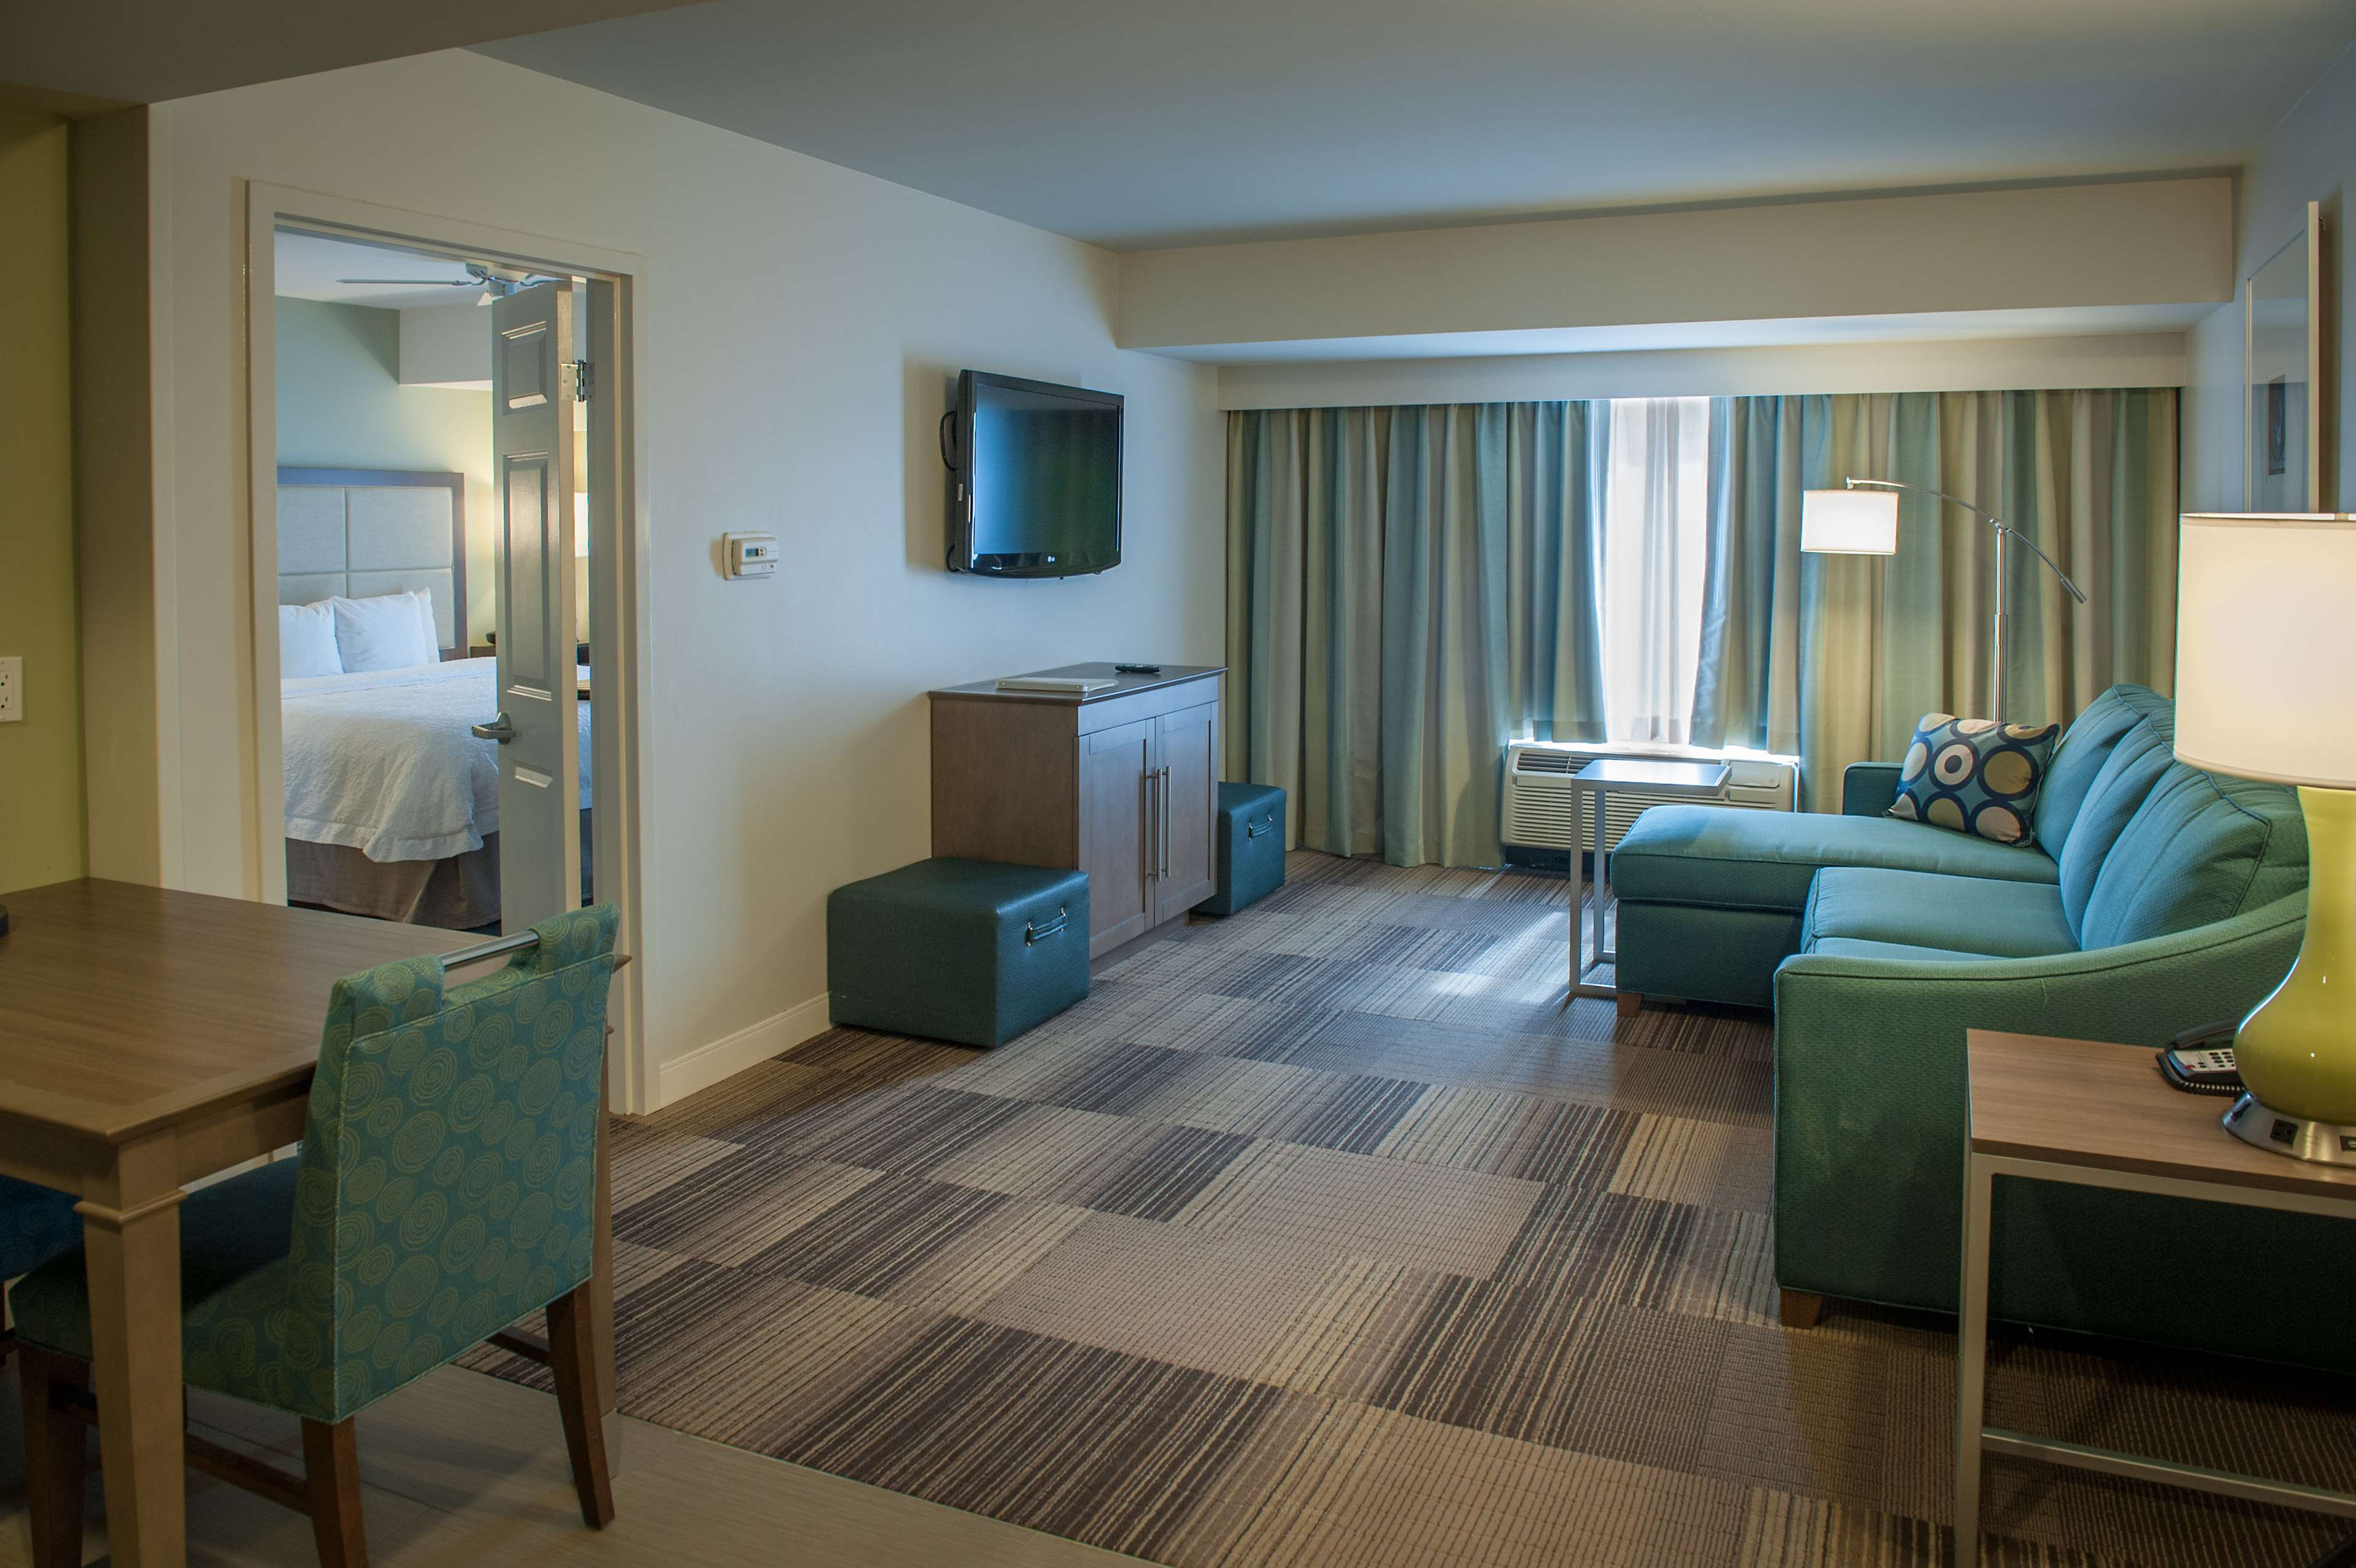 Hampton Inn & Suites New Orleans-Elmwood/Clearview Parkway Area image 24